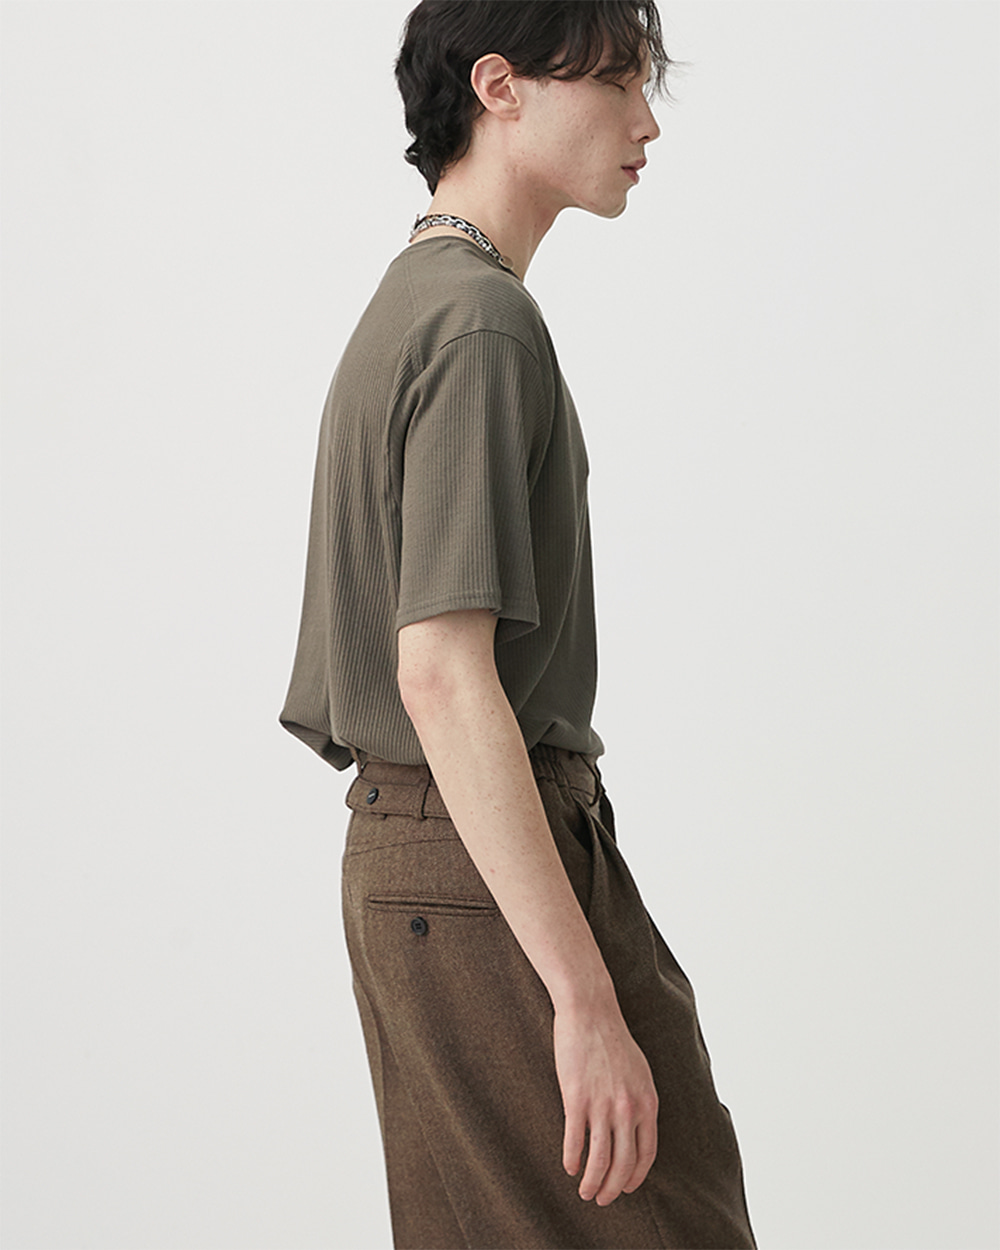 HALEINE알렌느 KHAKIBROWN backside half raglan 1/2 knit t-shirts(NT024)